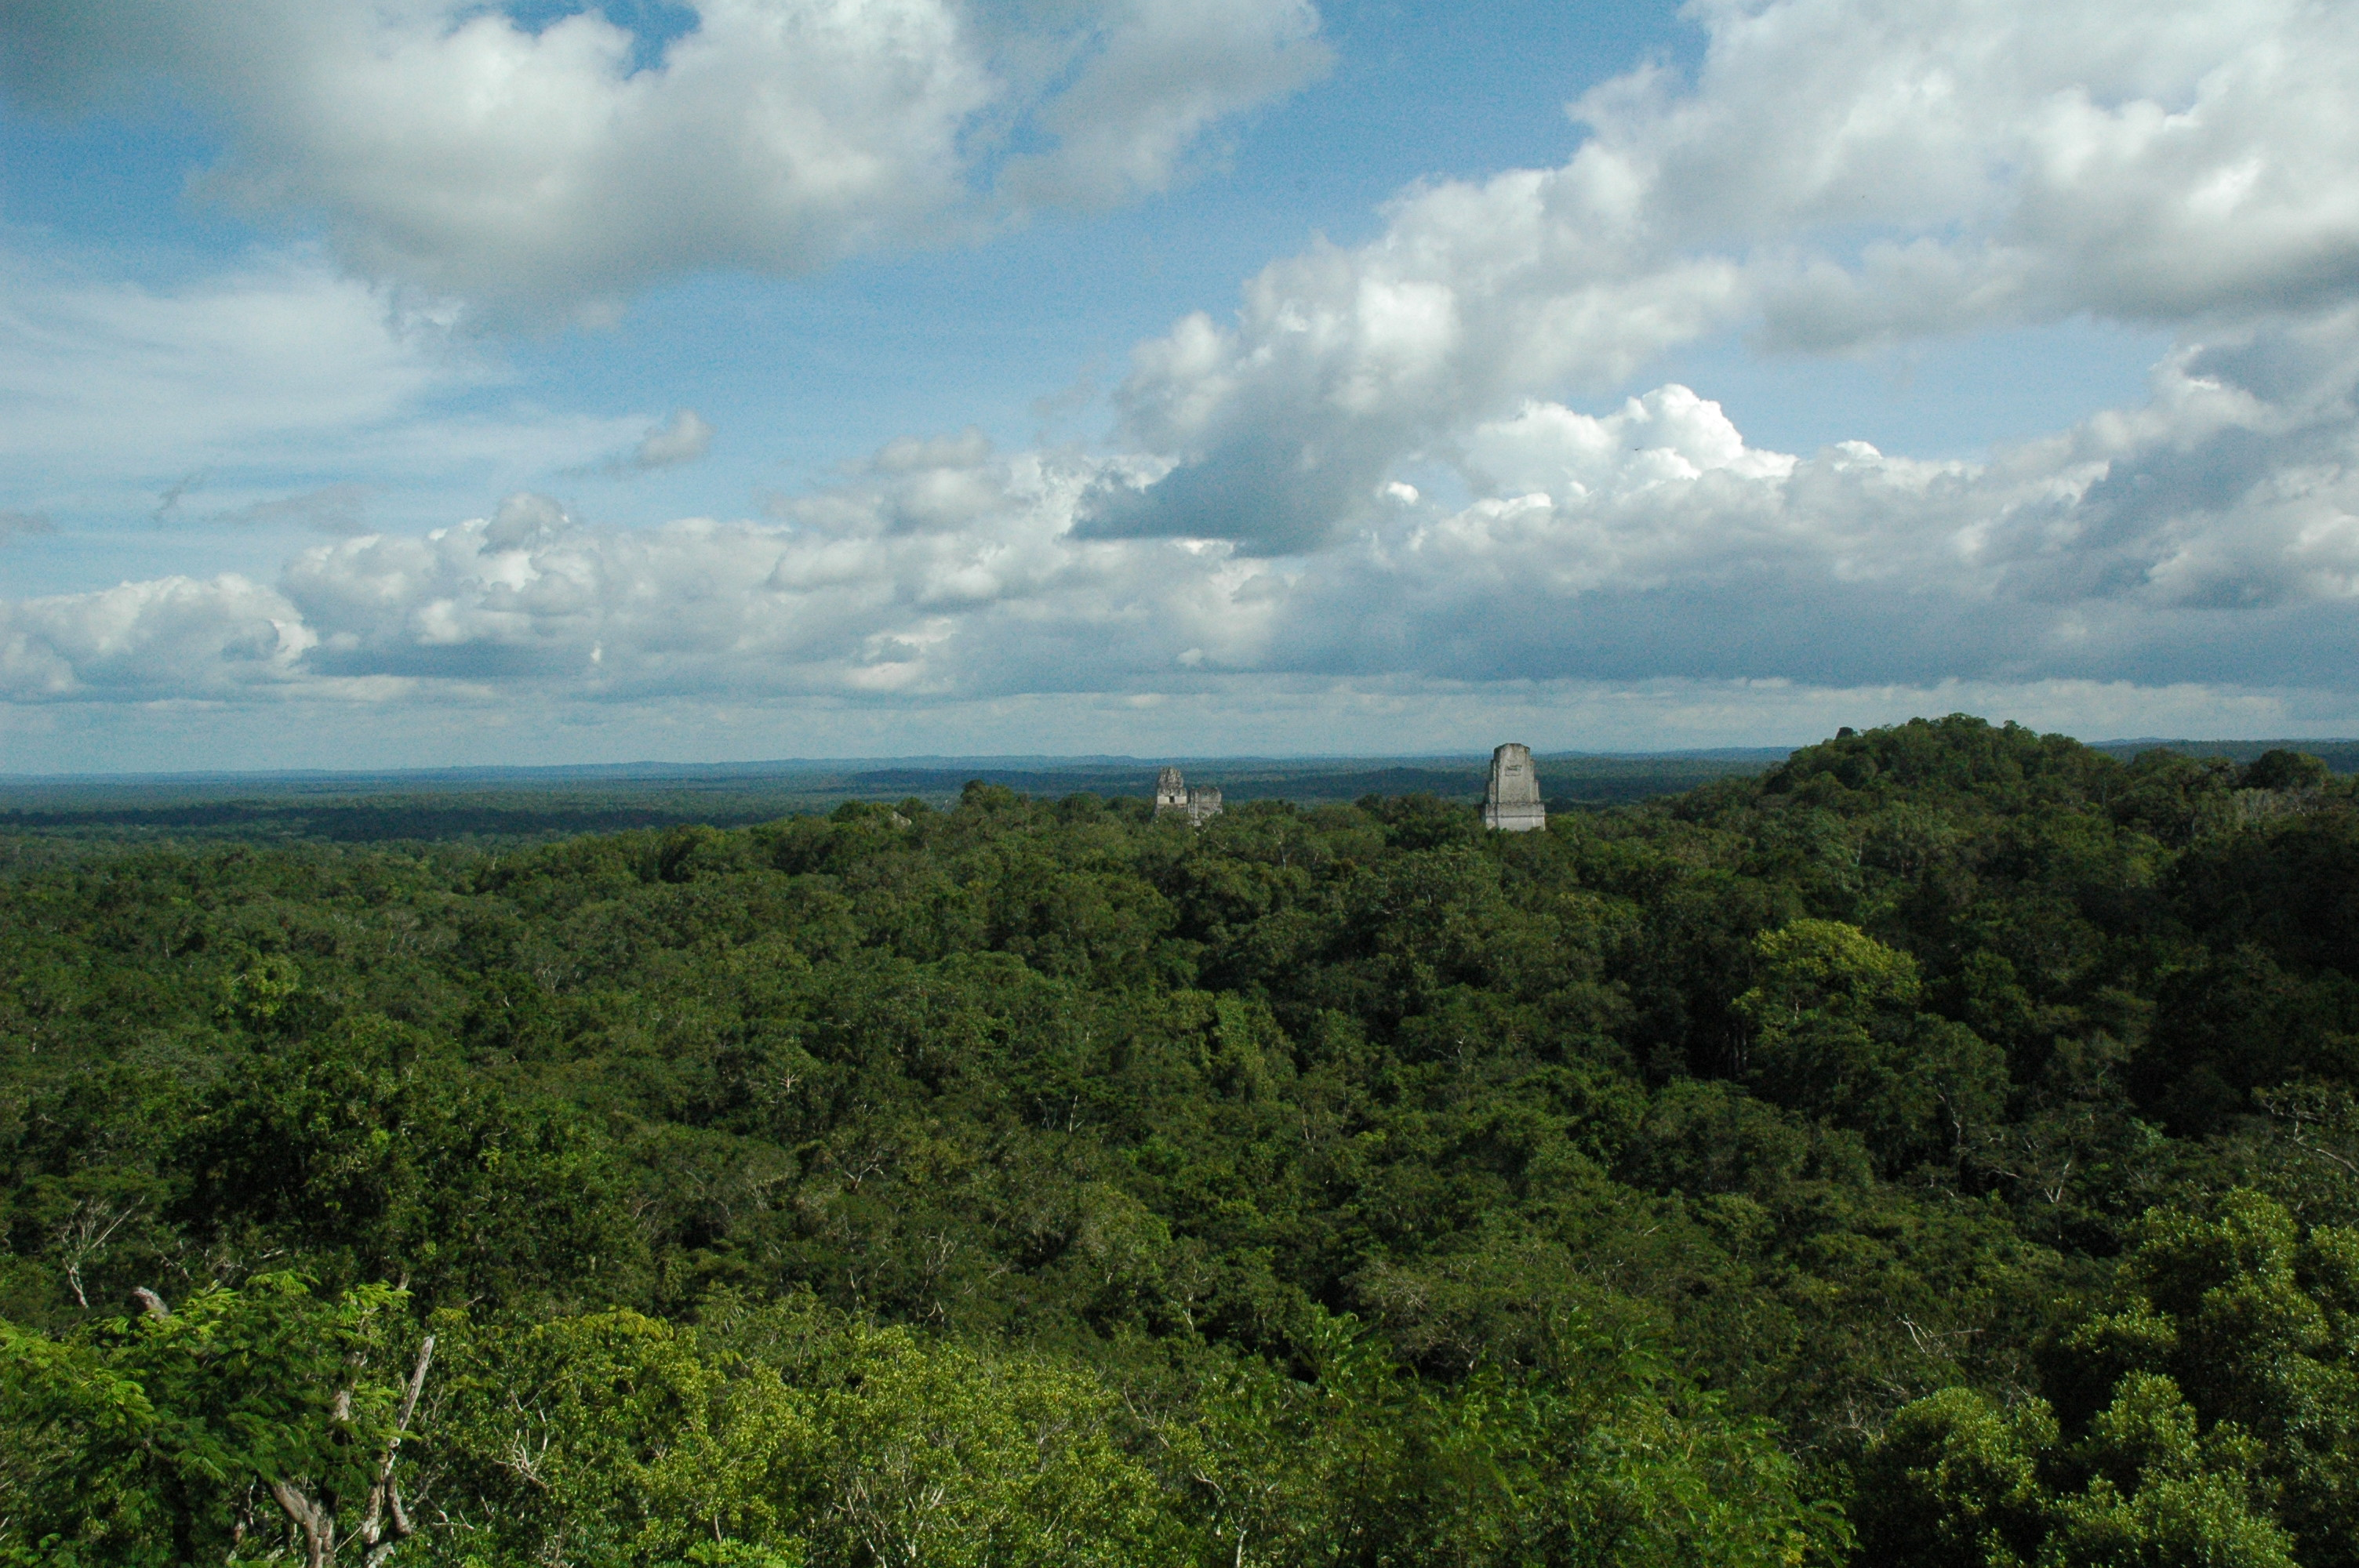 Tikal Guatemala Star Wars File:star Wars in Guatemala